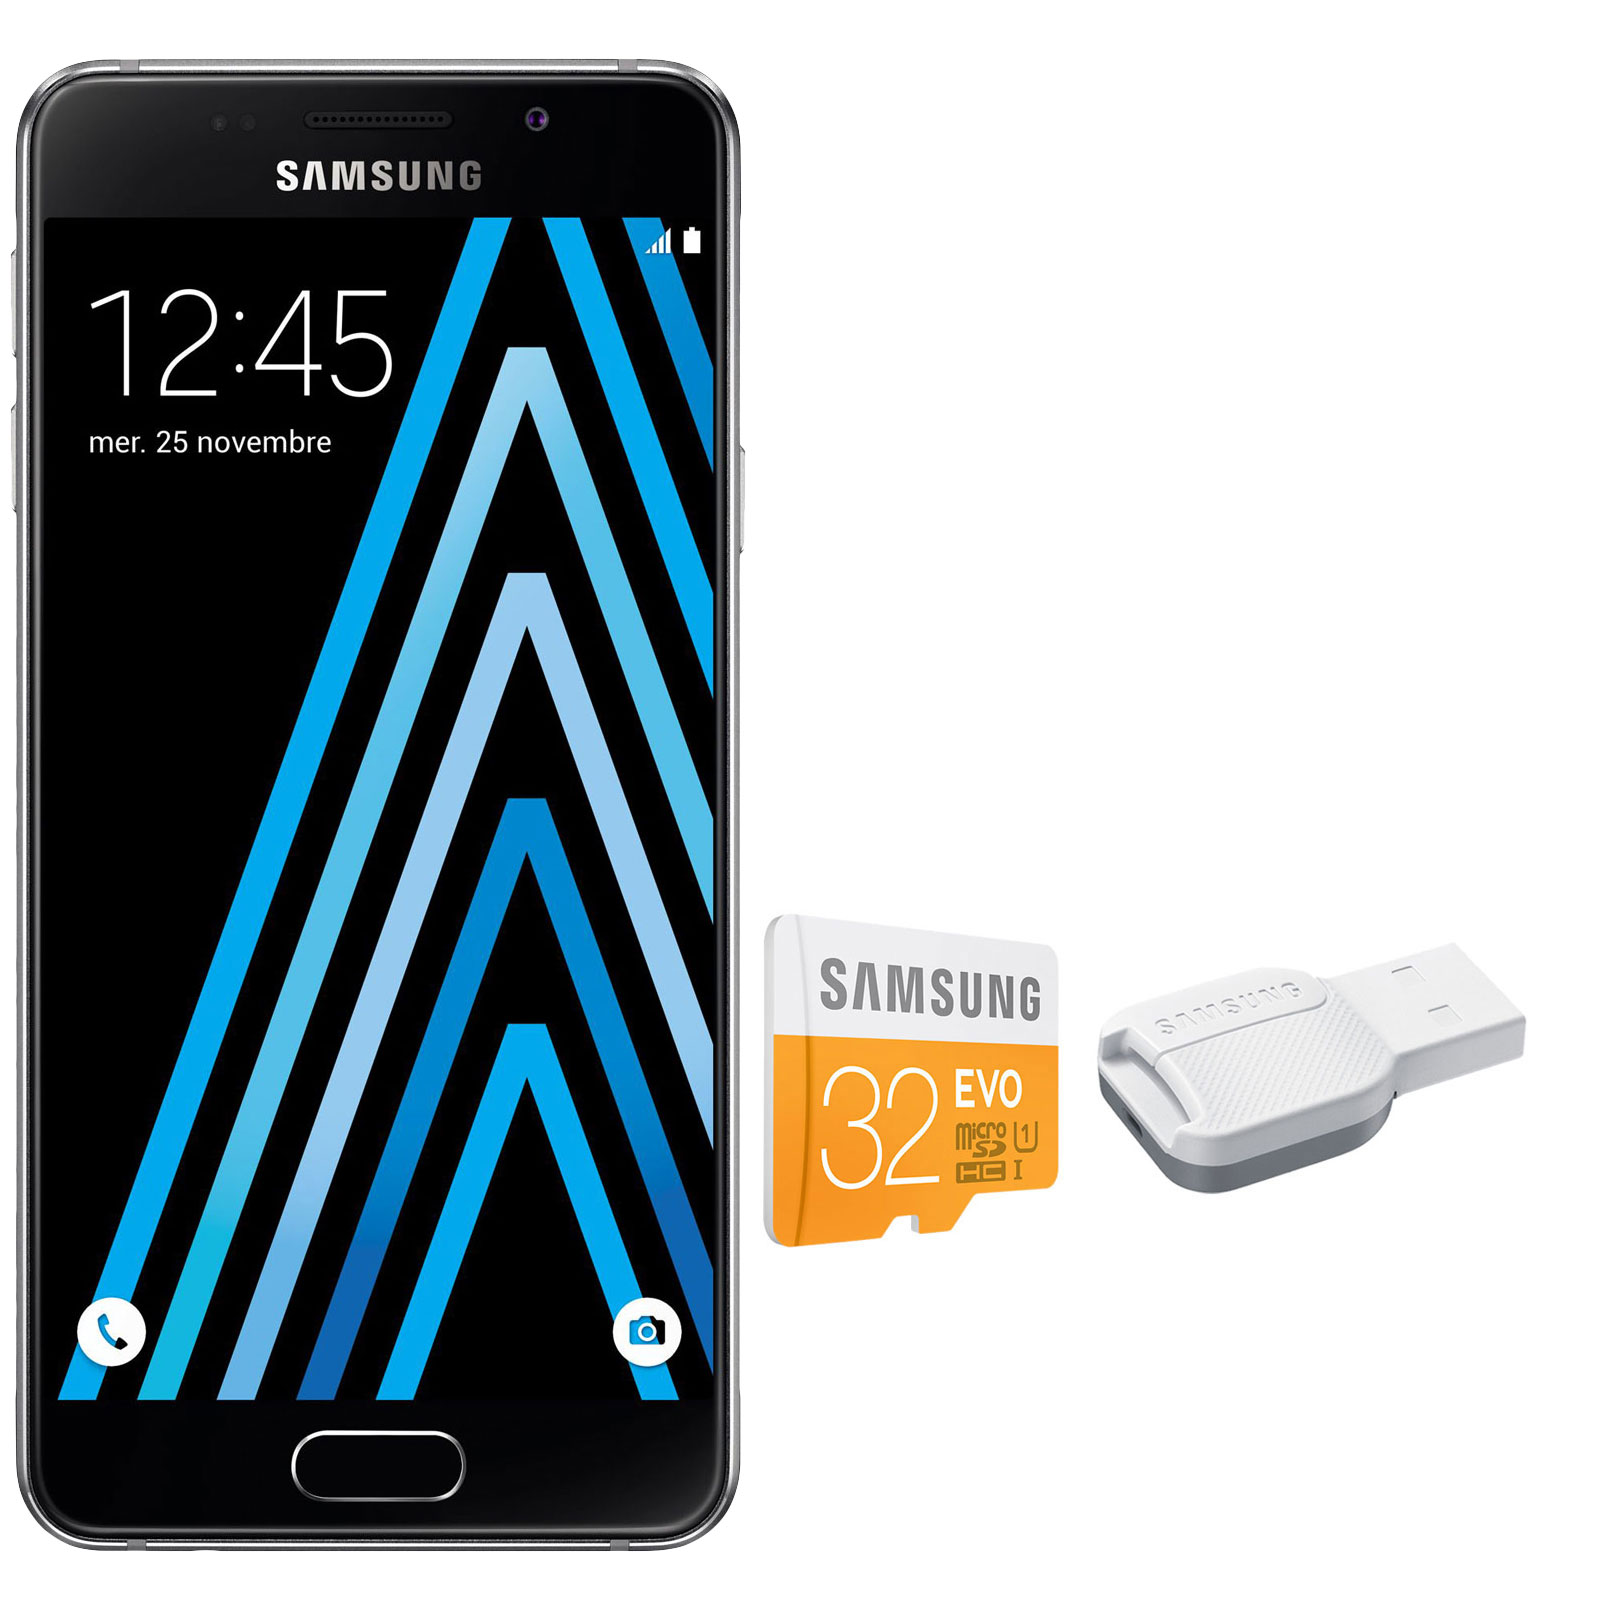 samsung galaxy a3 2016 noir microsdhc 32 go mobile smartphone samsung sur. Black Bedroom Furniture Sets. Home Design Ideas